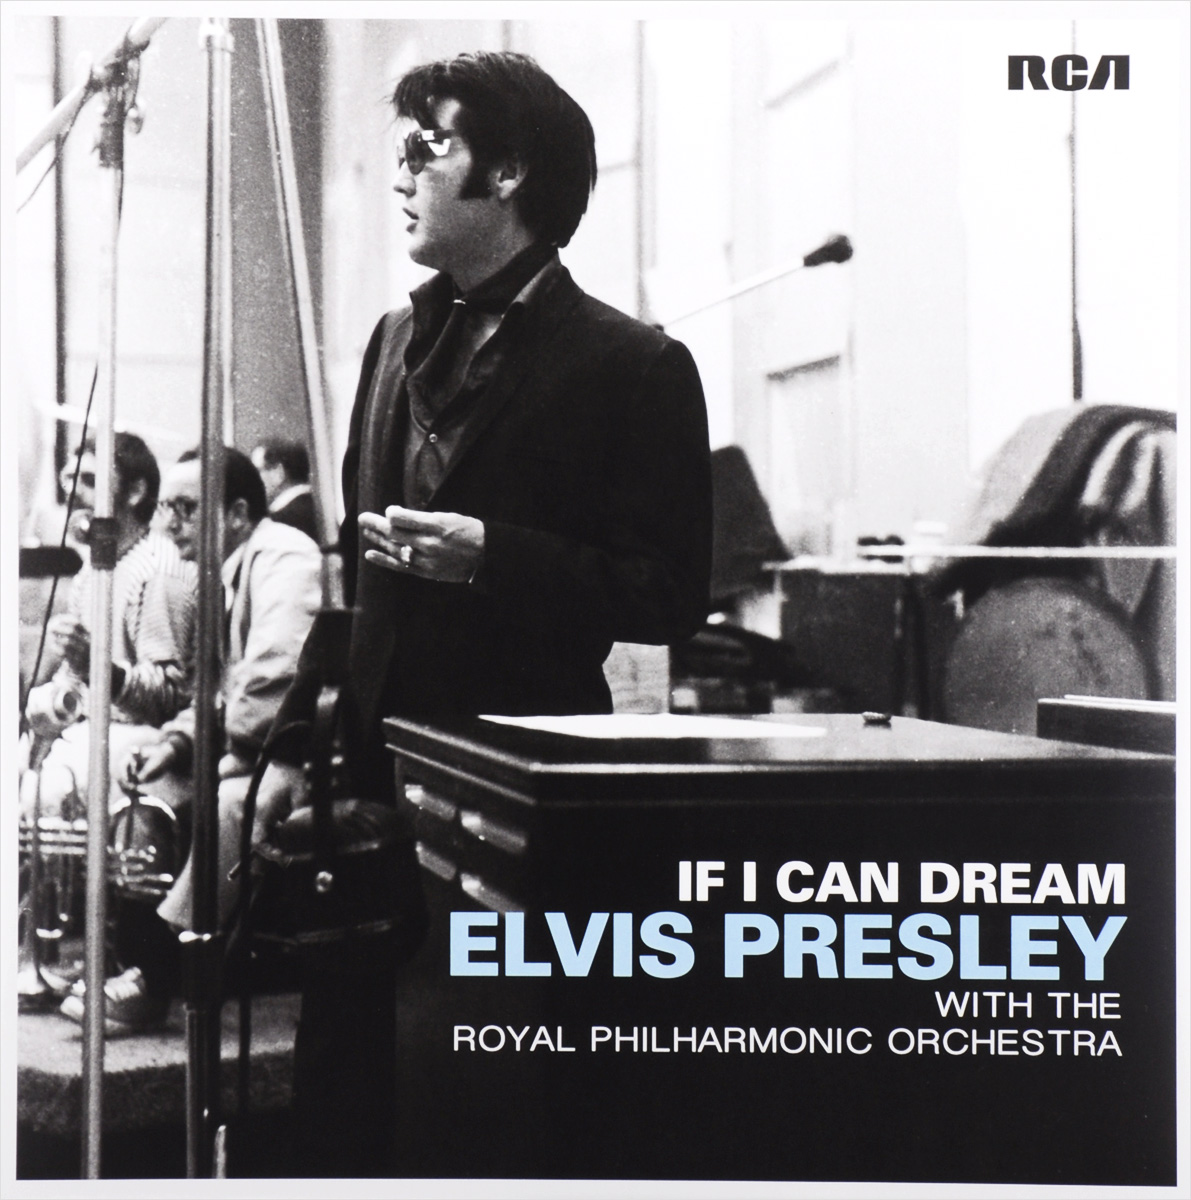 Элвис Пресли,The Royal Philharmonic Orchestra Elvis Presley With The Royal Philharmonic Orchestra. If I Can Dream (2 LP)